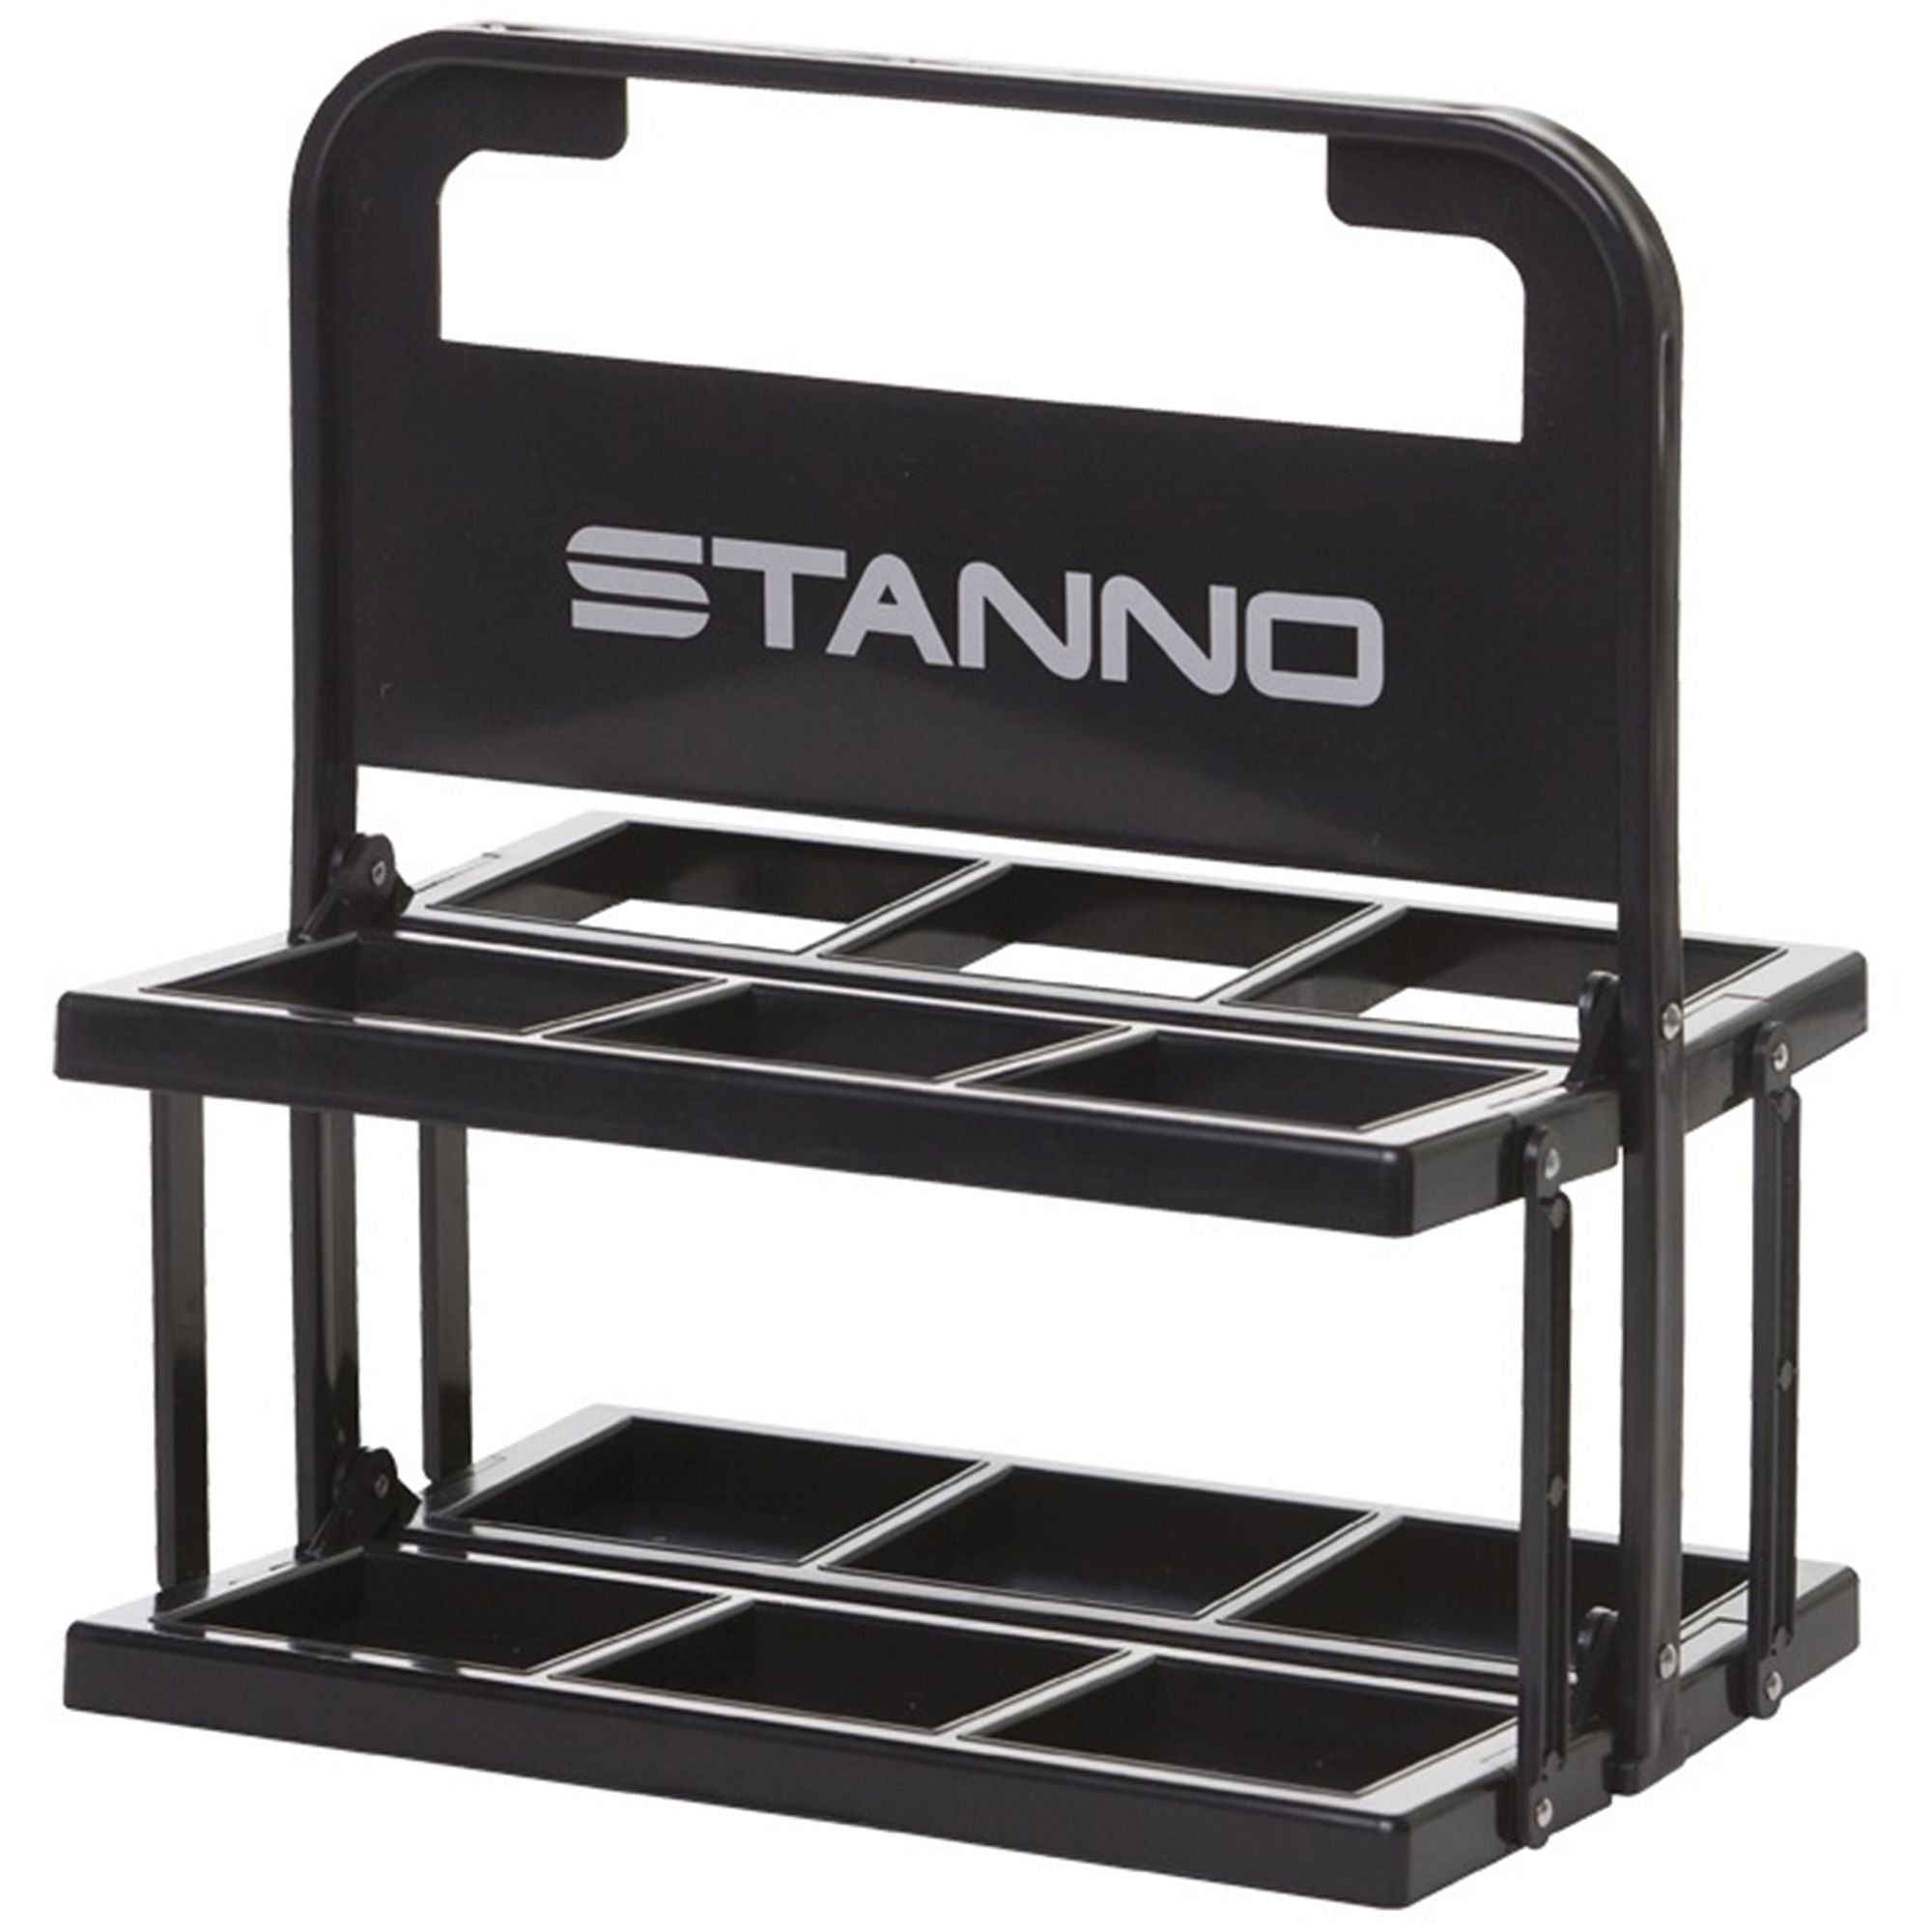 Black Stanno plastic 6 bottle set carrier with Stanno letter logo on the handle